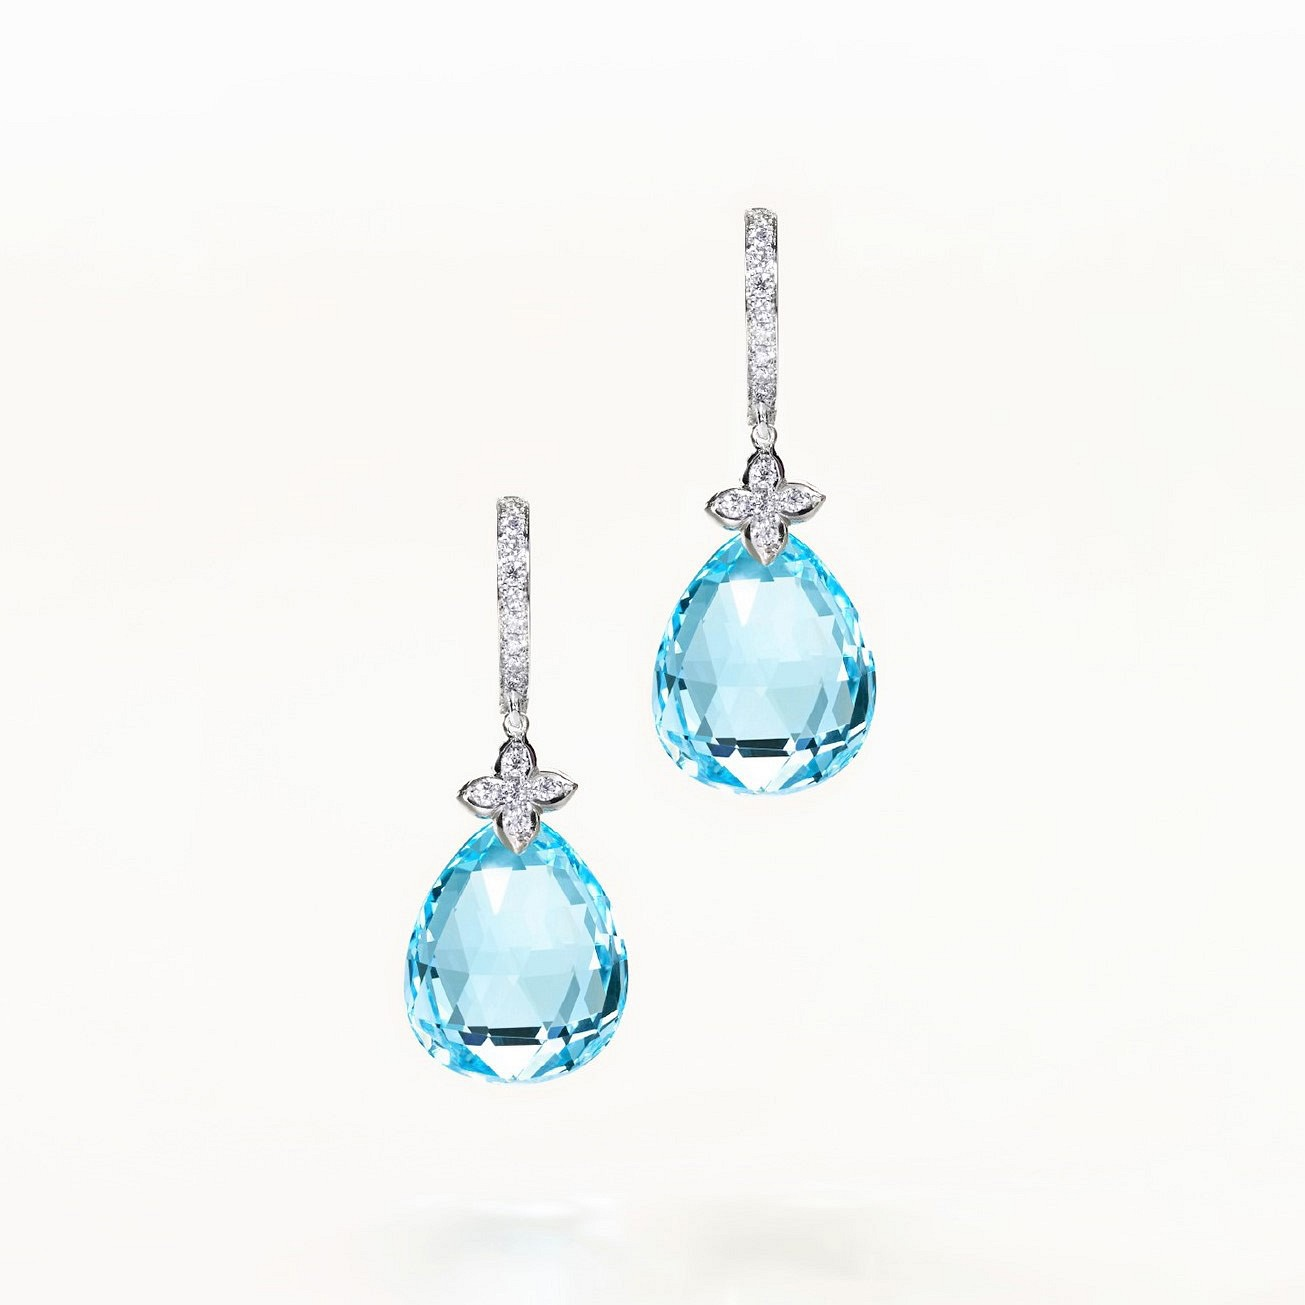 Blue Topaz pear shaped earrings. Diamonds and white gold